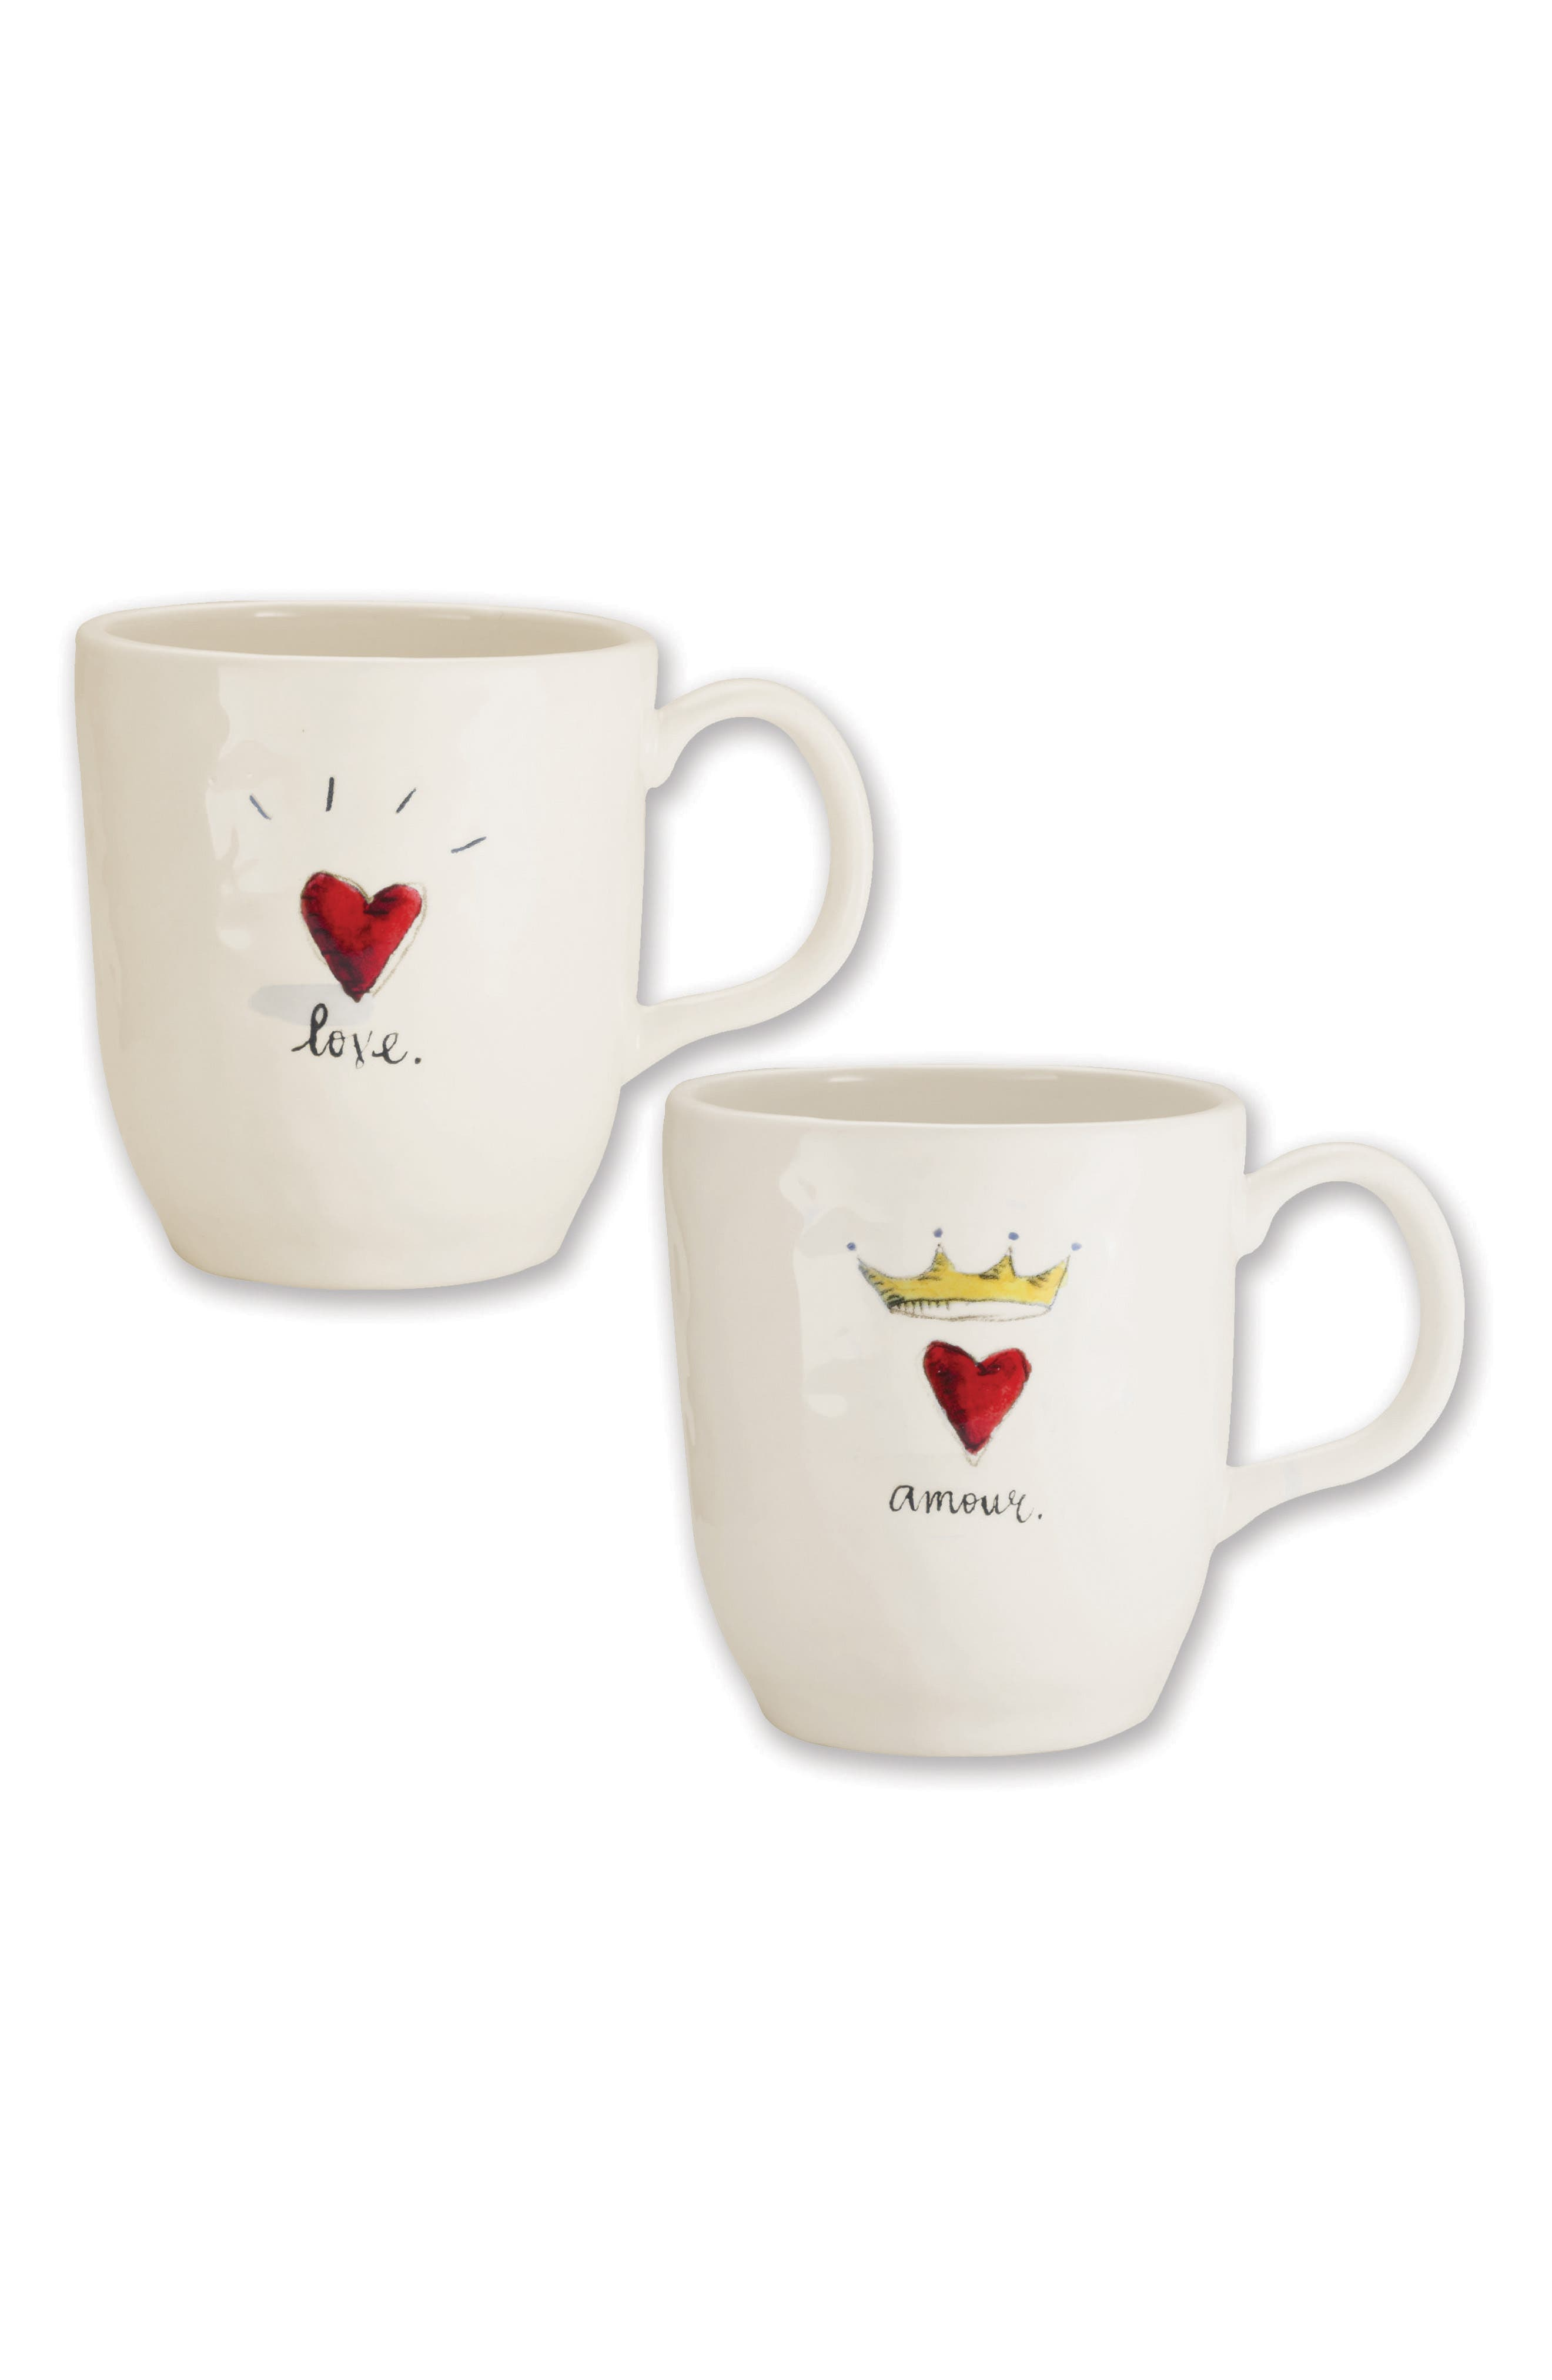 Rae Dunn Love & Amour Set of 2 Ceramic Mugs